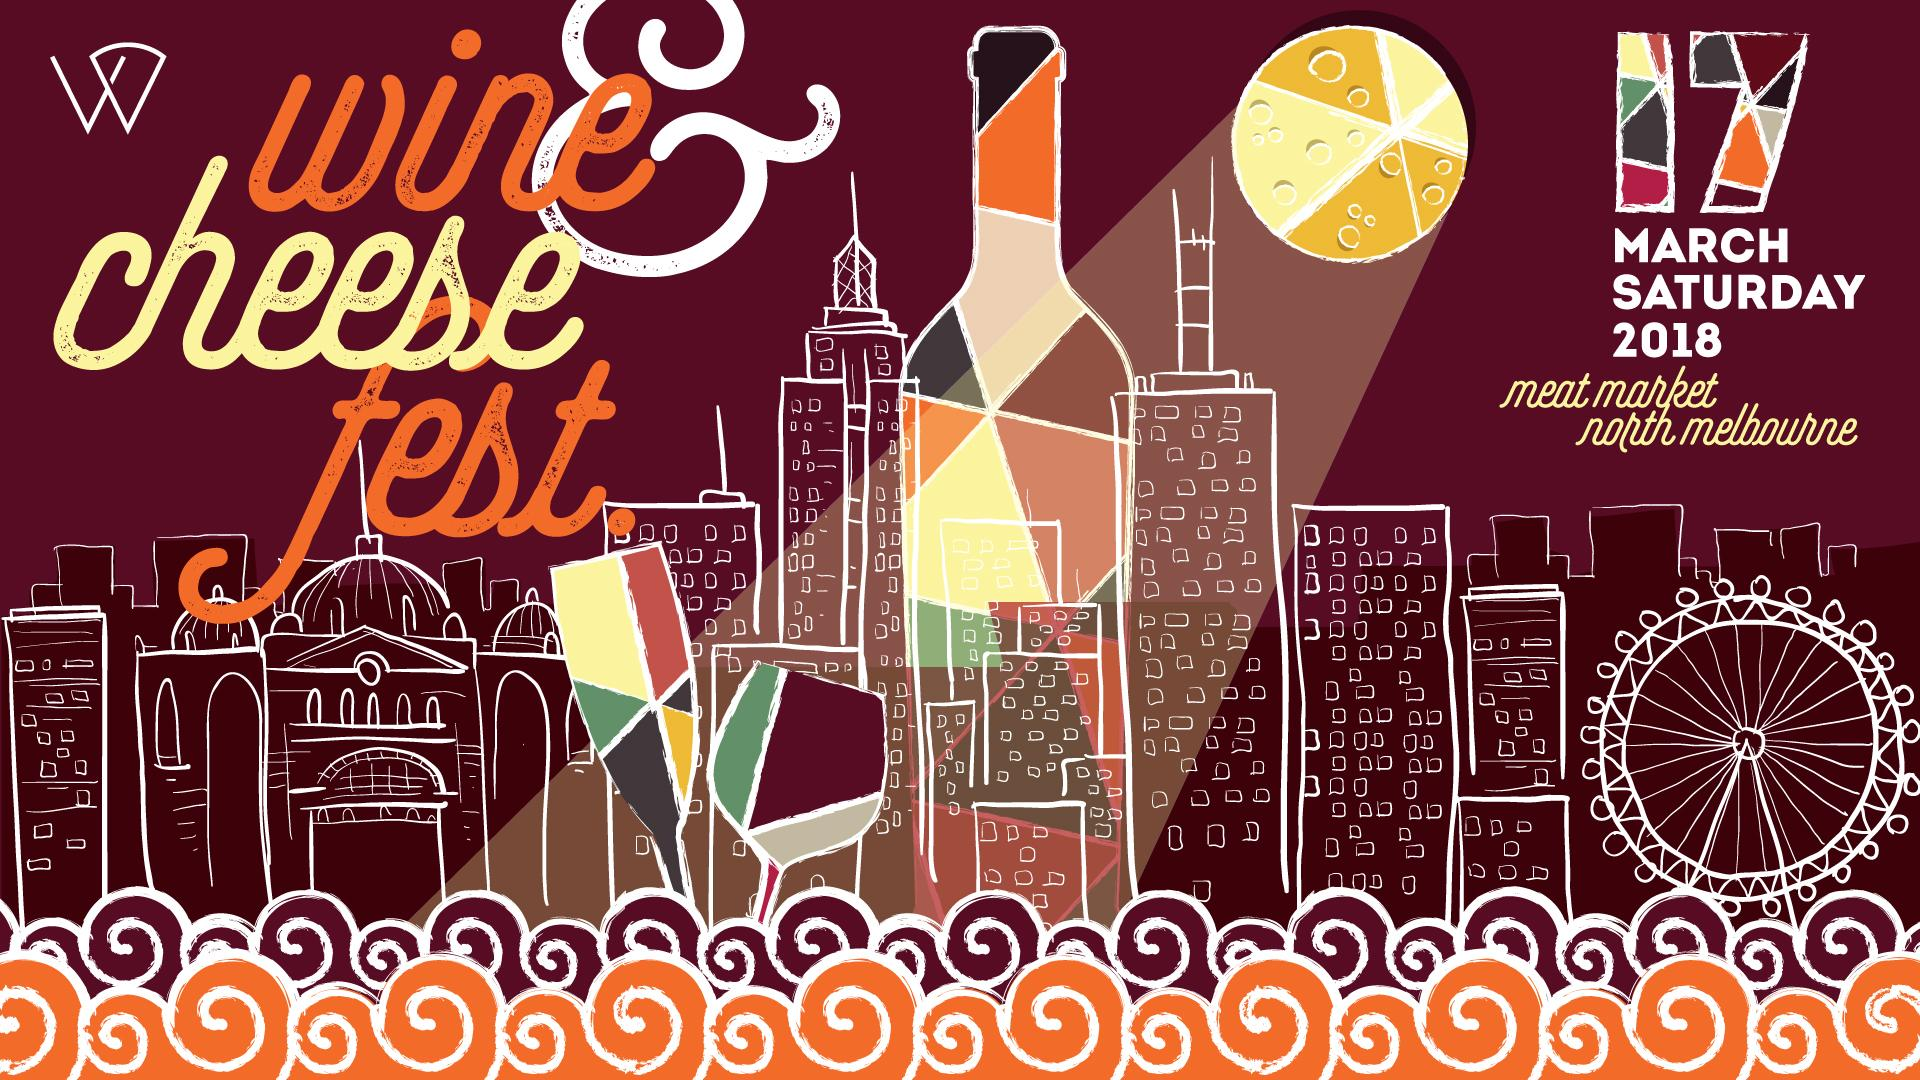 Wine and Cheese Fest @ The Meat Market North